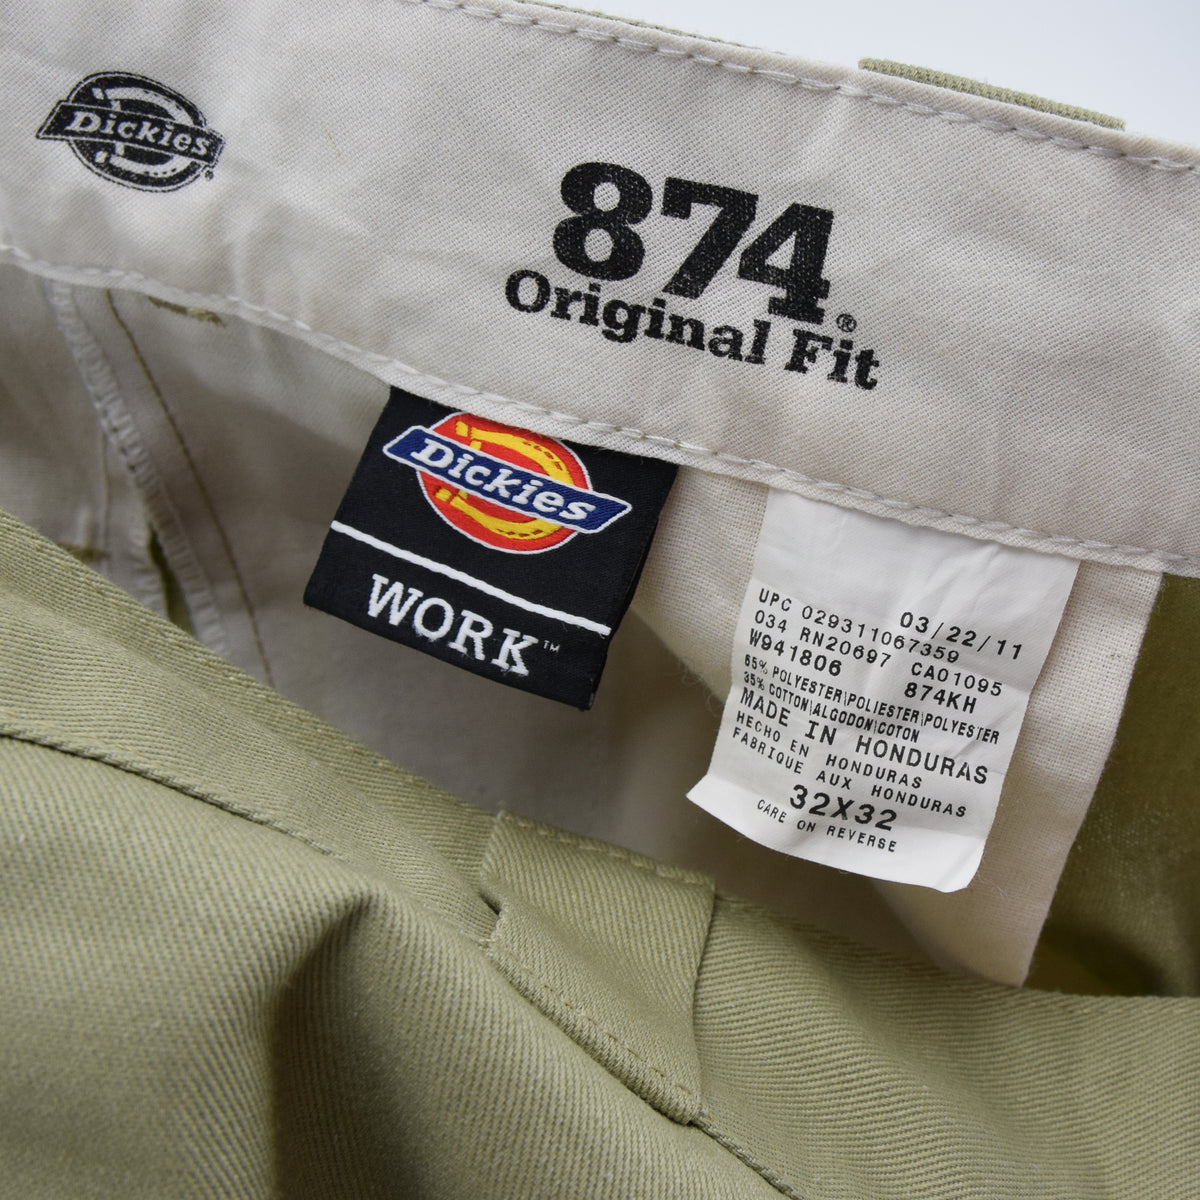 Dickies Workwear 874 Original Fit Work Flat Front Utility Trousers 30 W 32 L label